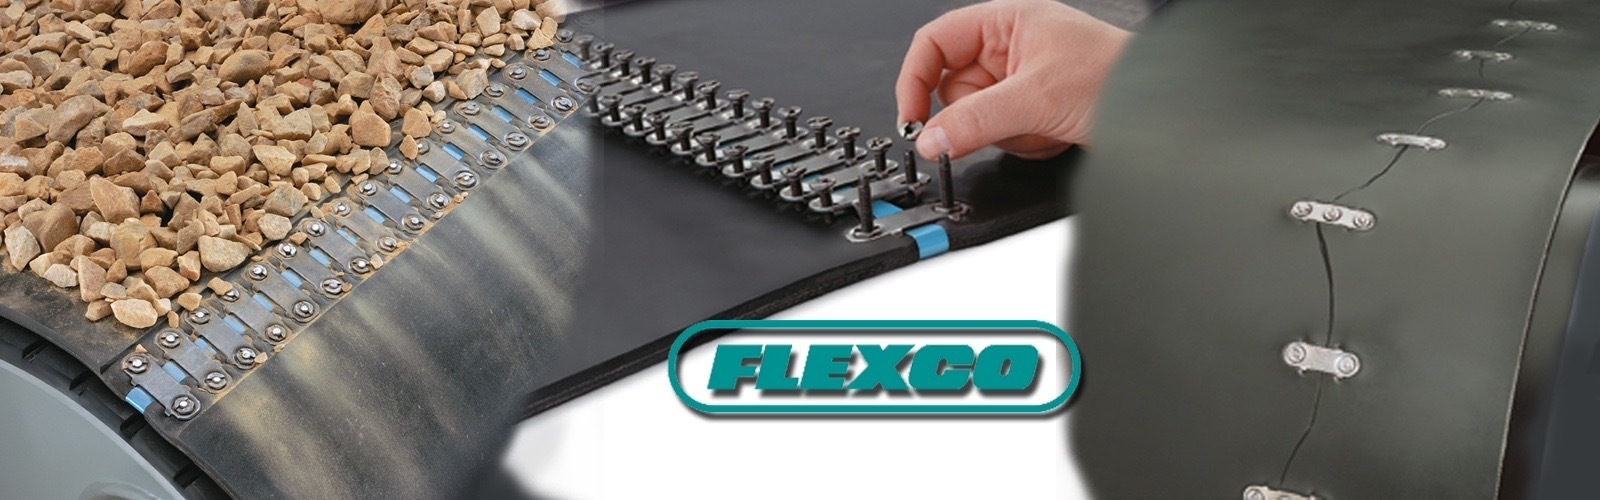 FLEXCO-SLIDE-1_1